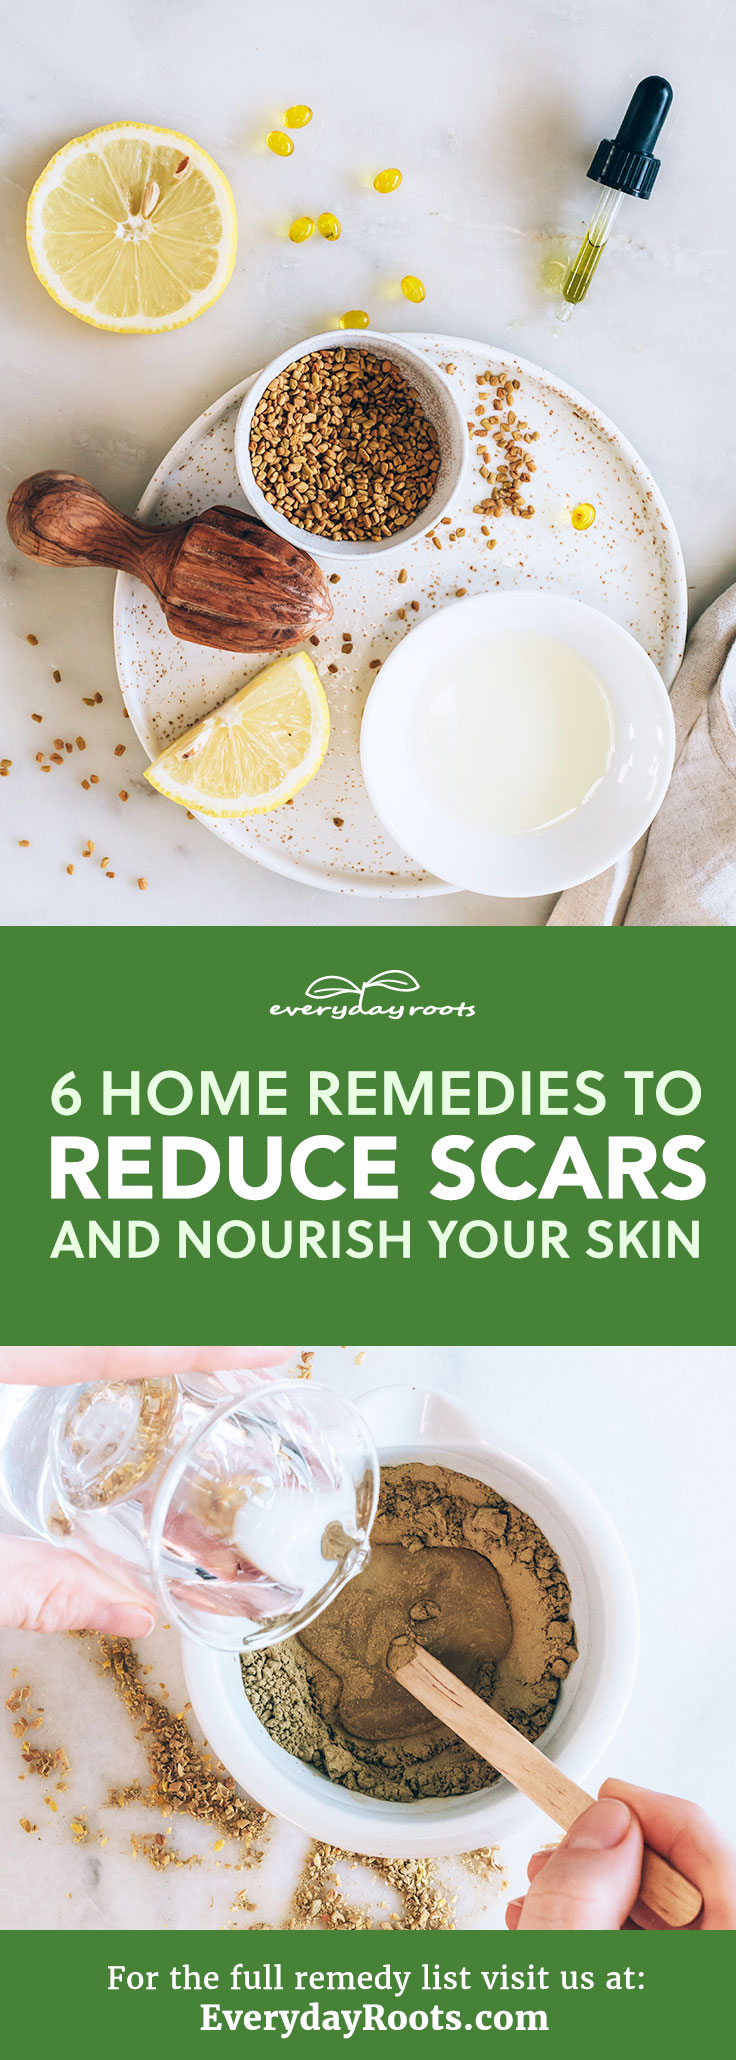 Take a look at these 6 effective natural remedies to reduce the appearance of scars and nourish your skin.